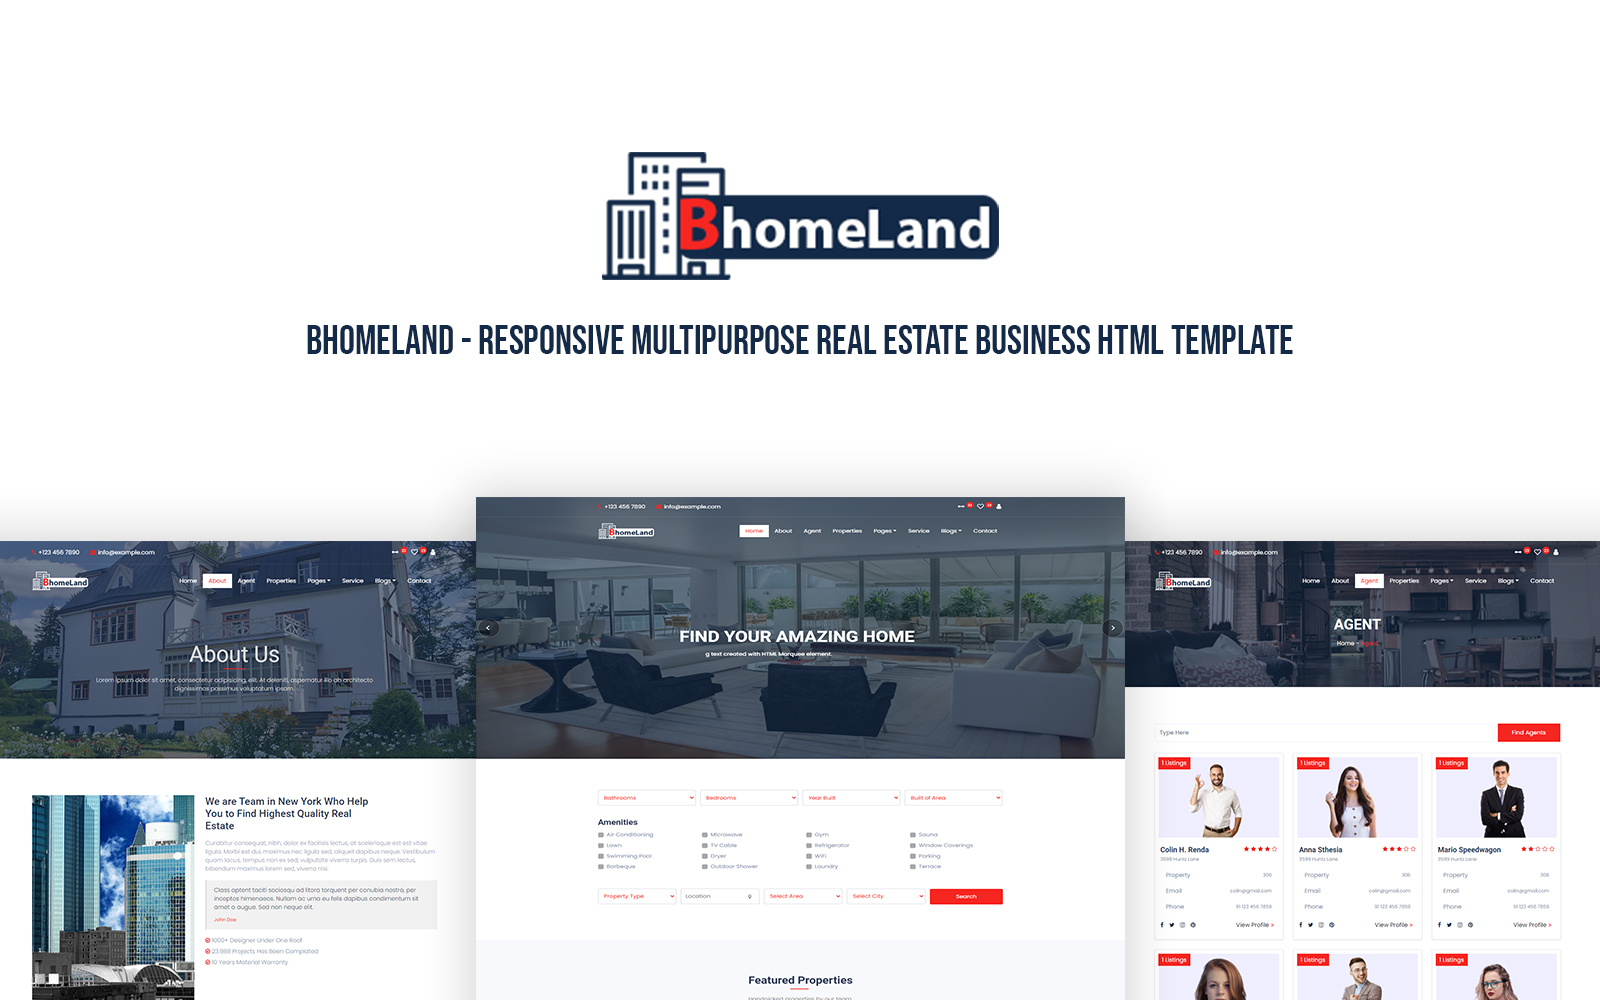 """""""Bhomeland - Responsive Multipurpose Real Estate Business HTML Template"""" 响应式网页模板 #171346"""